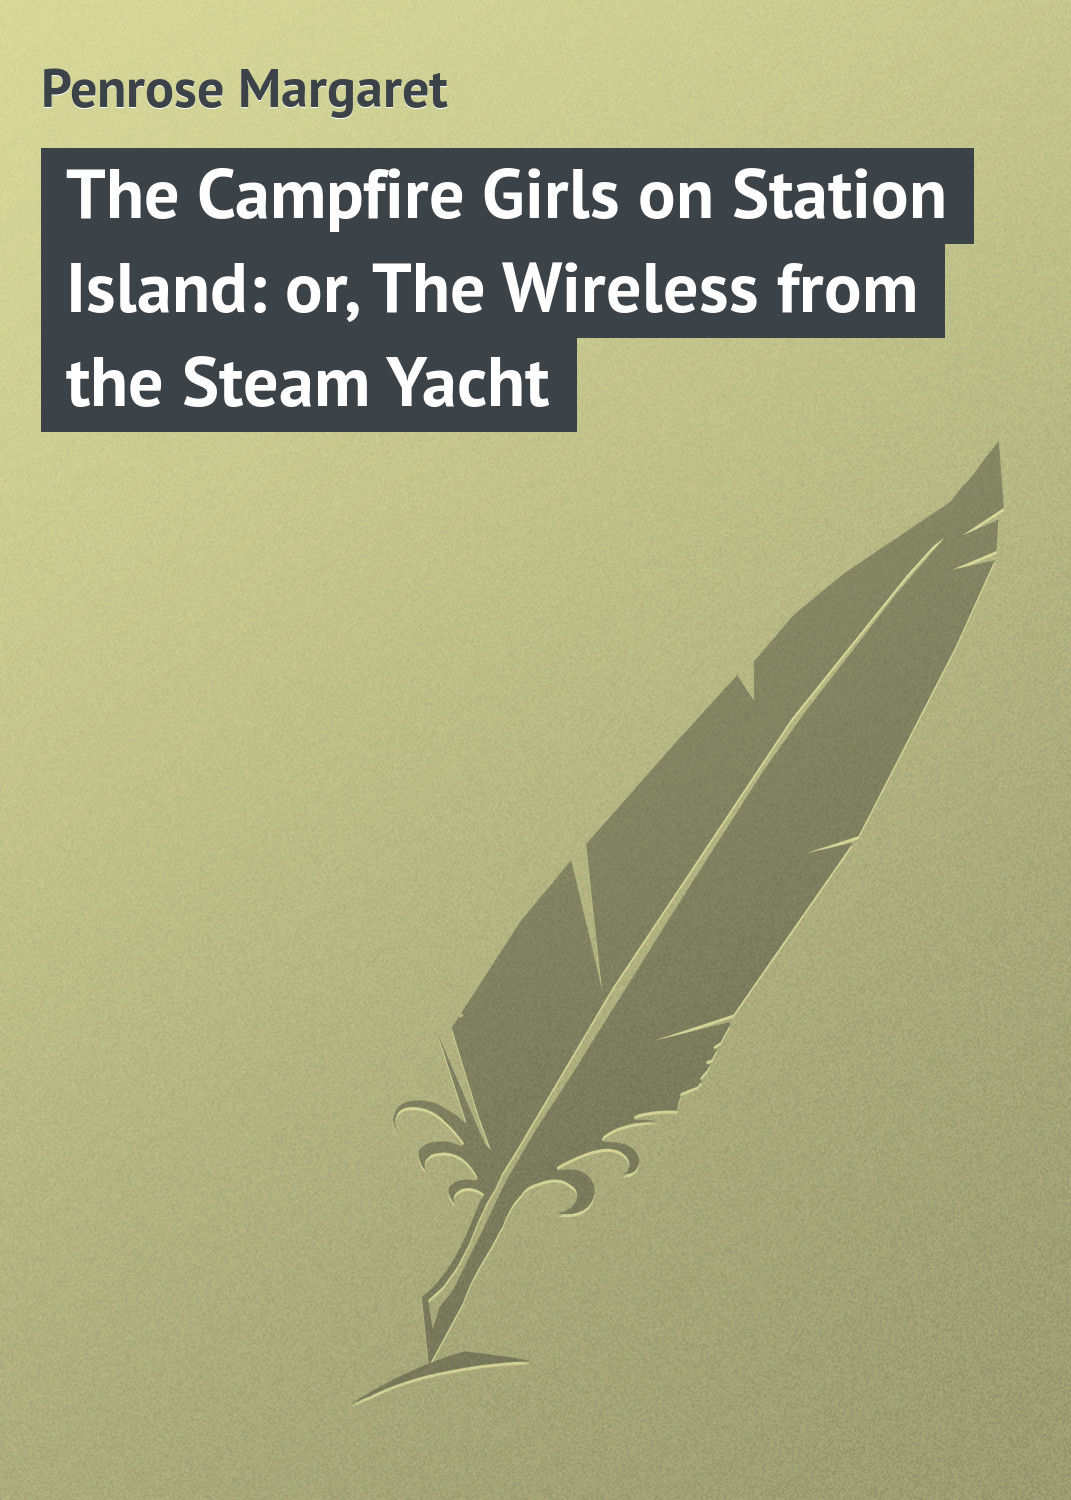 купить Penrose Margaret The Campfire Girls on Station Island: or, The Wireless from the Steam Yacht по цене 0 рублей